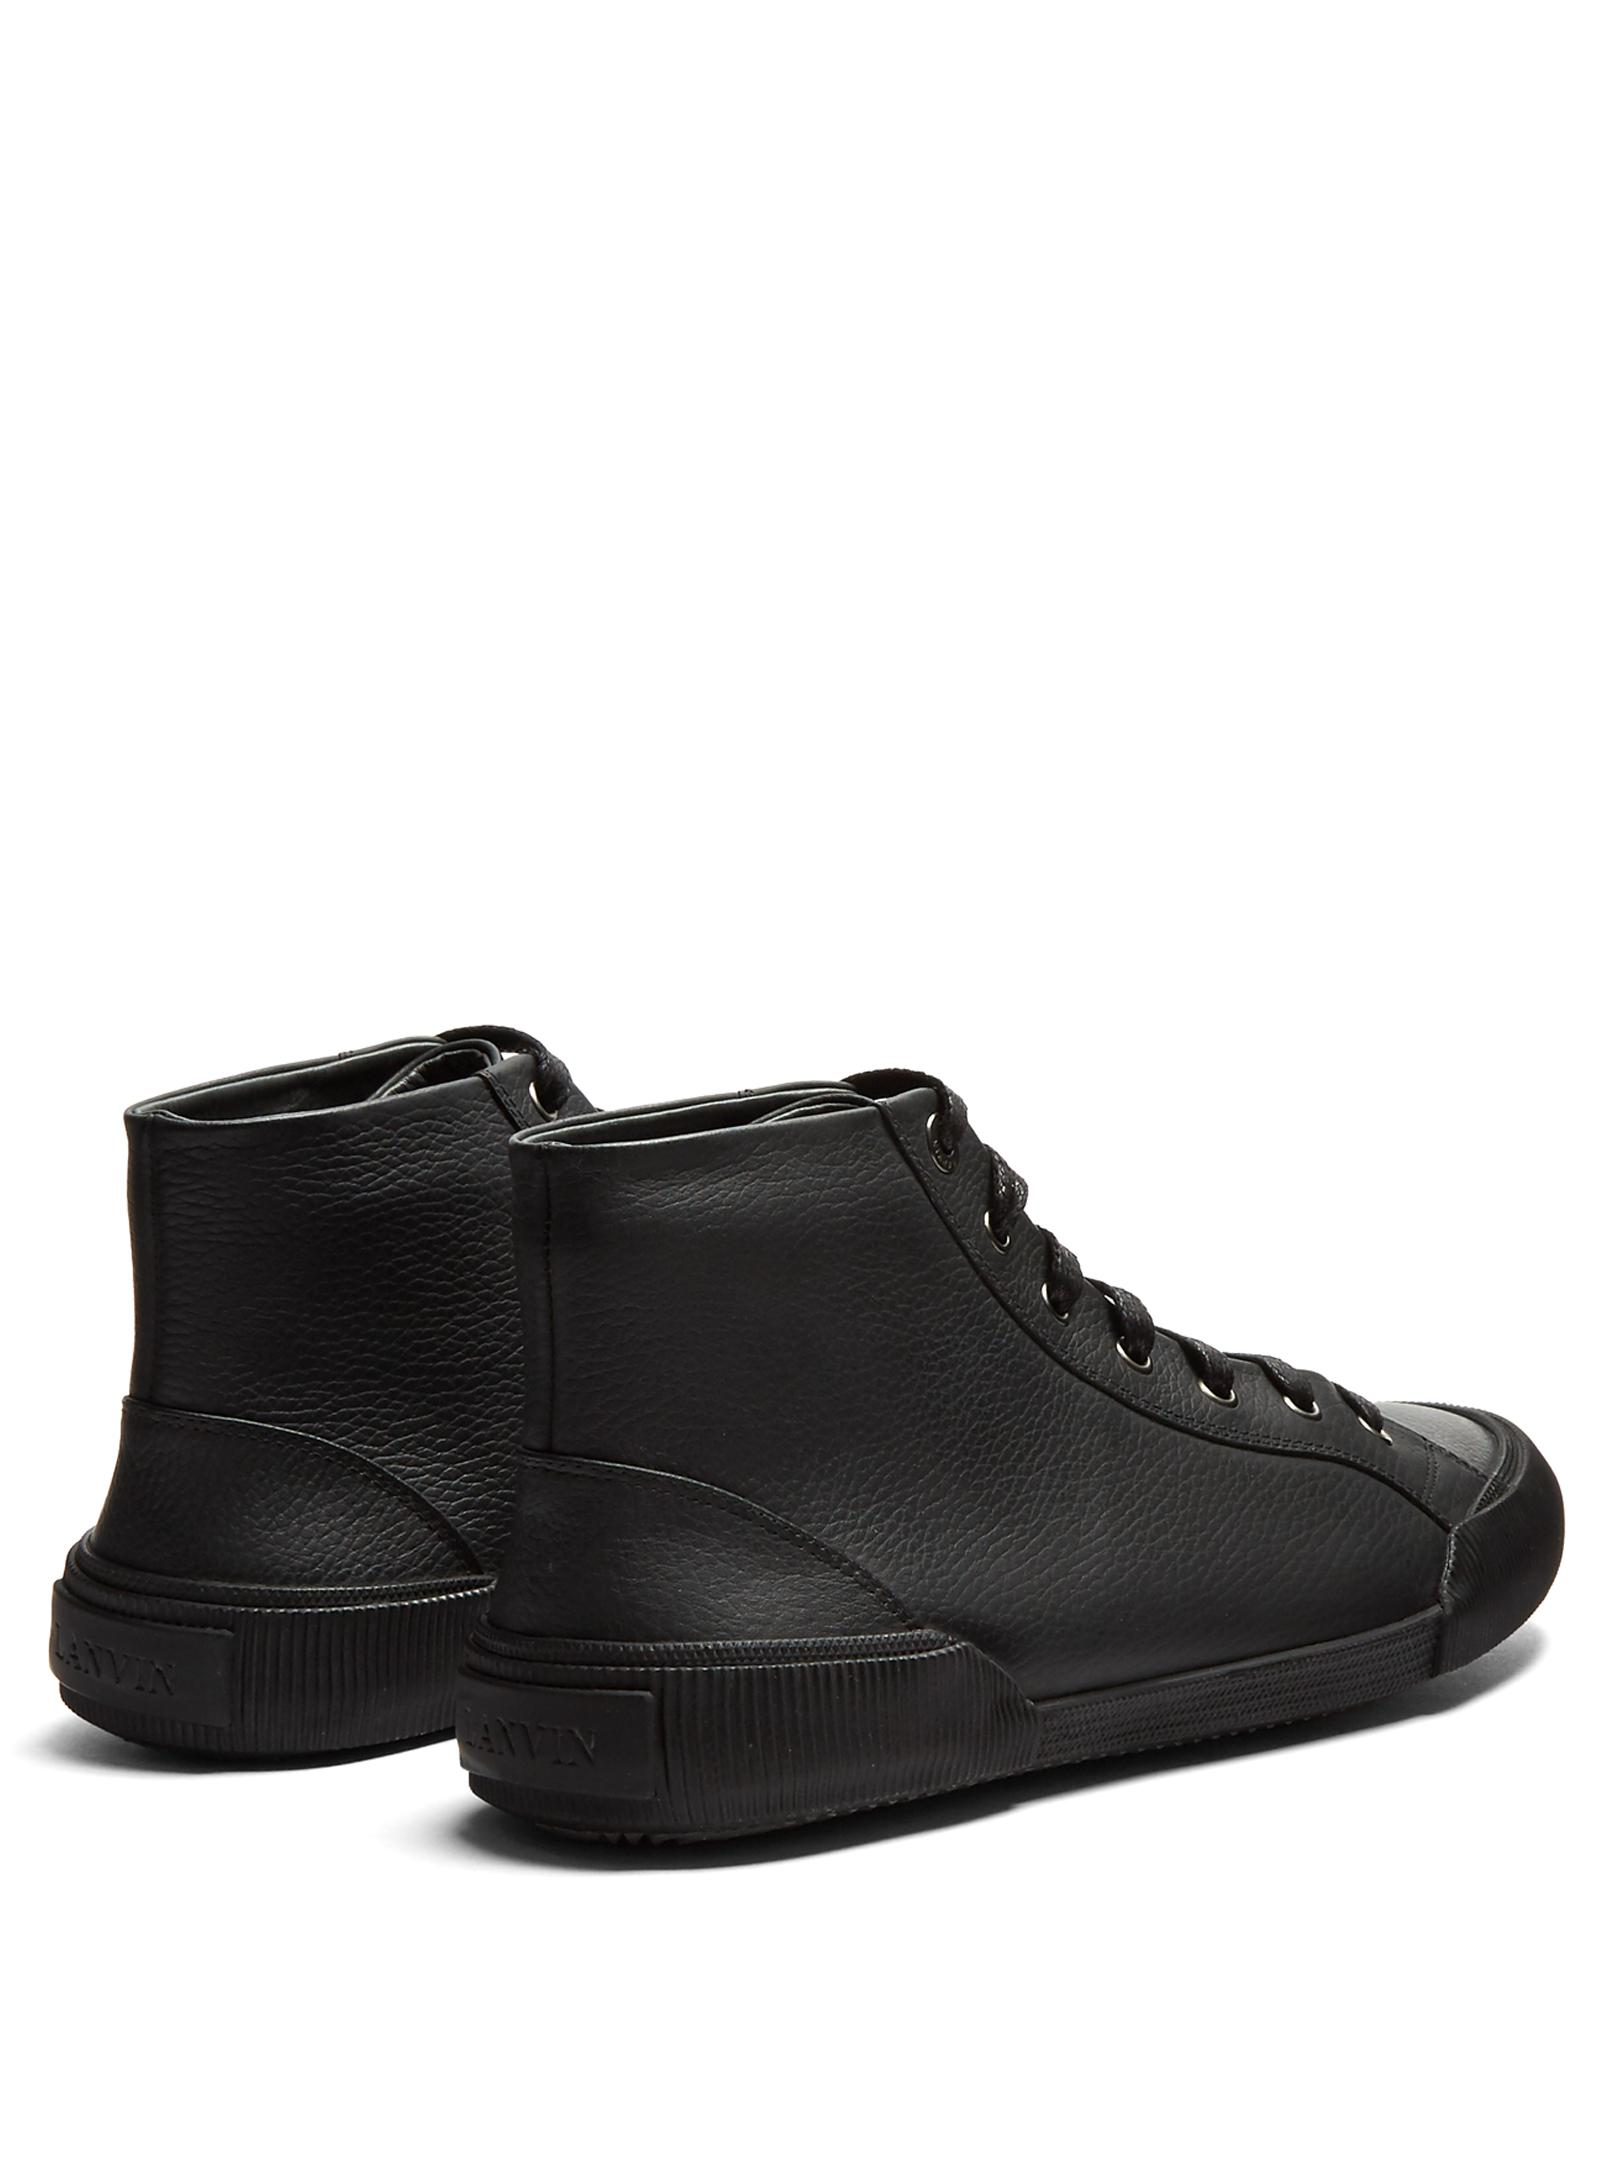 Lanvin High-top Grained-leather Trainers in Black for Men